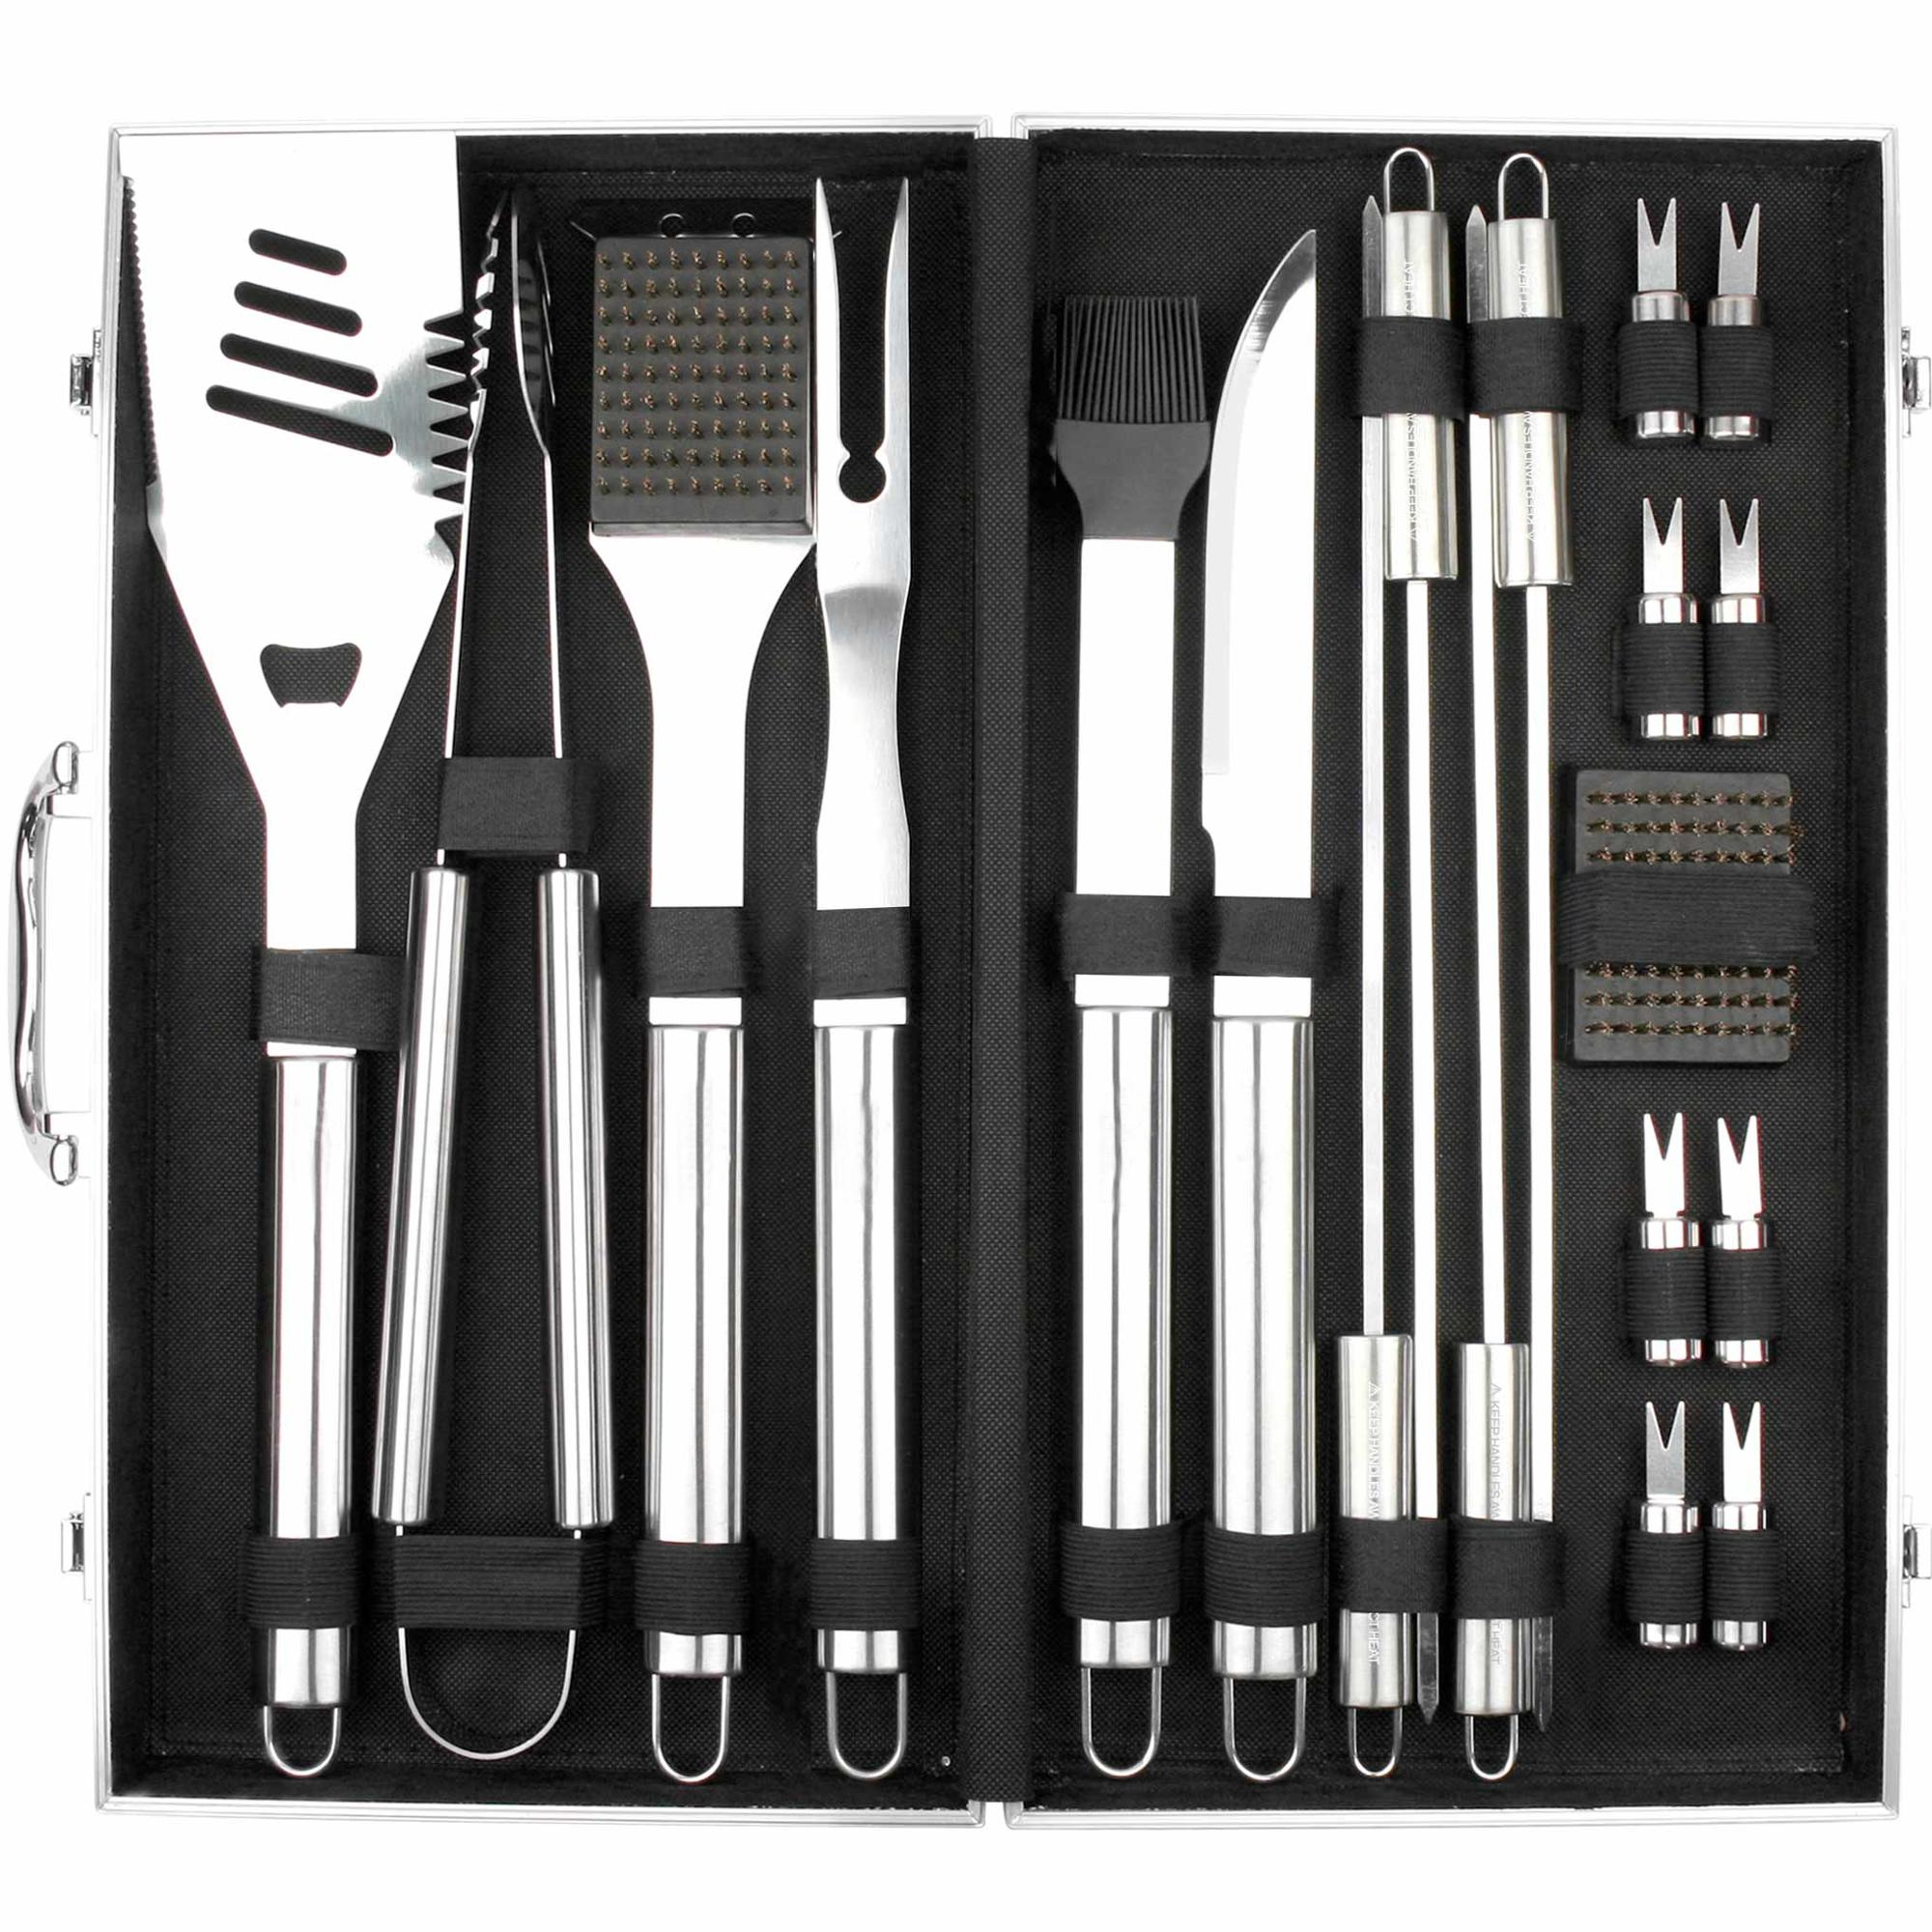 High quality 20 piece stainless steel bbq grill tools set with aluminium case